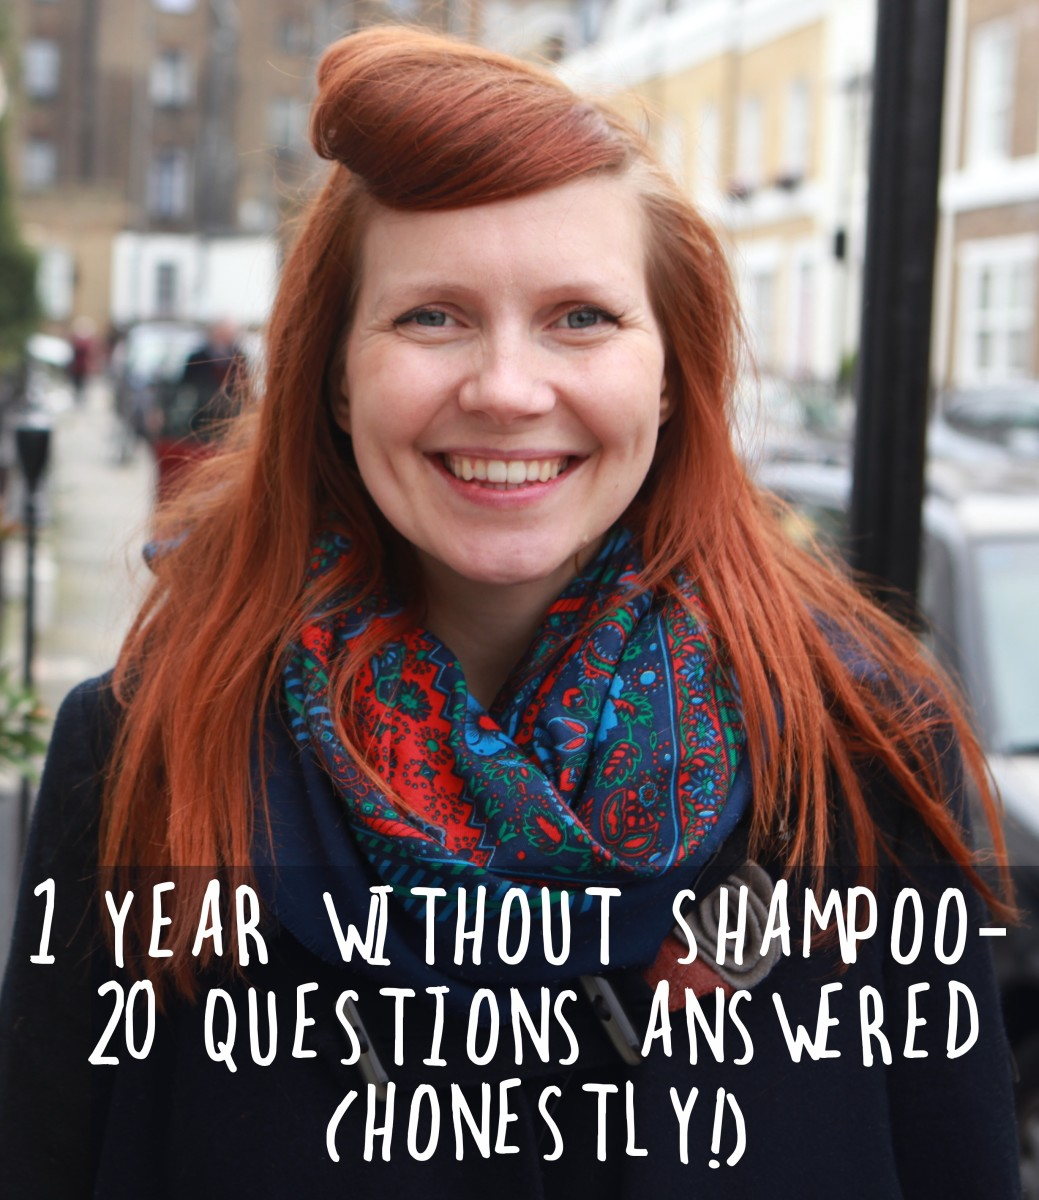 This lady has a fantastic blog post about her journey being poo-free!